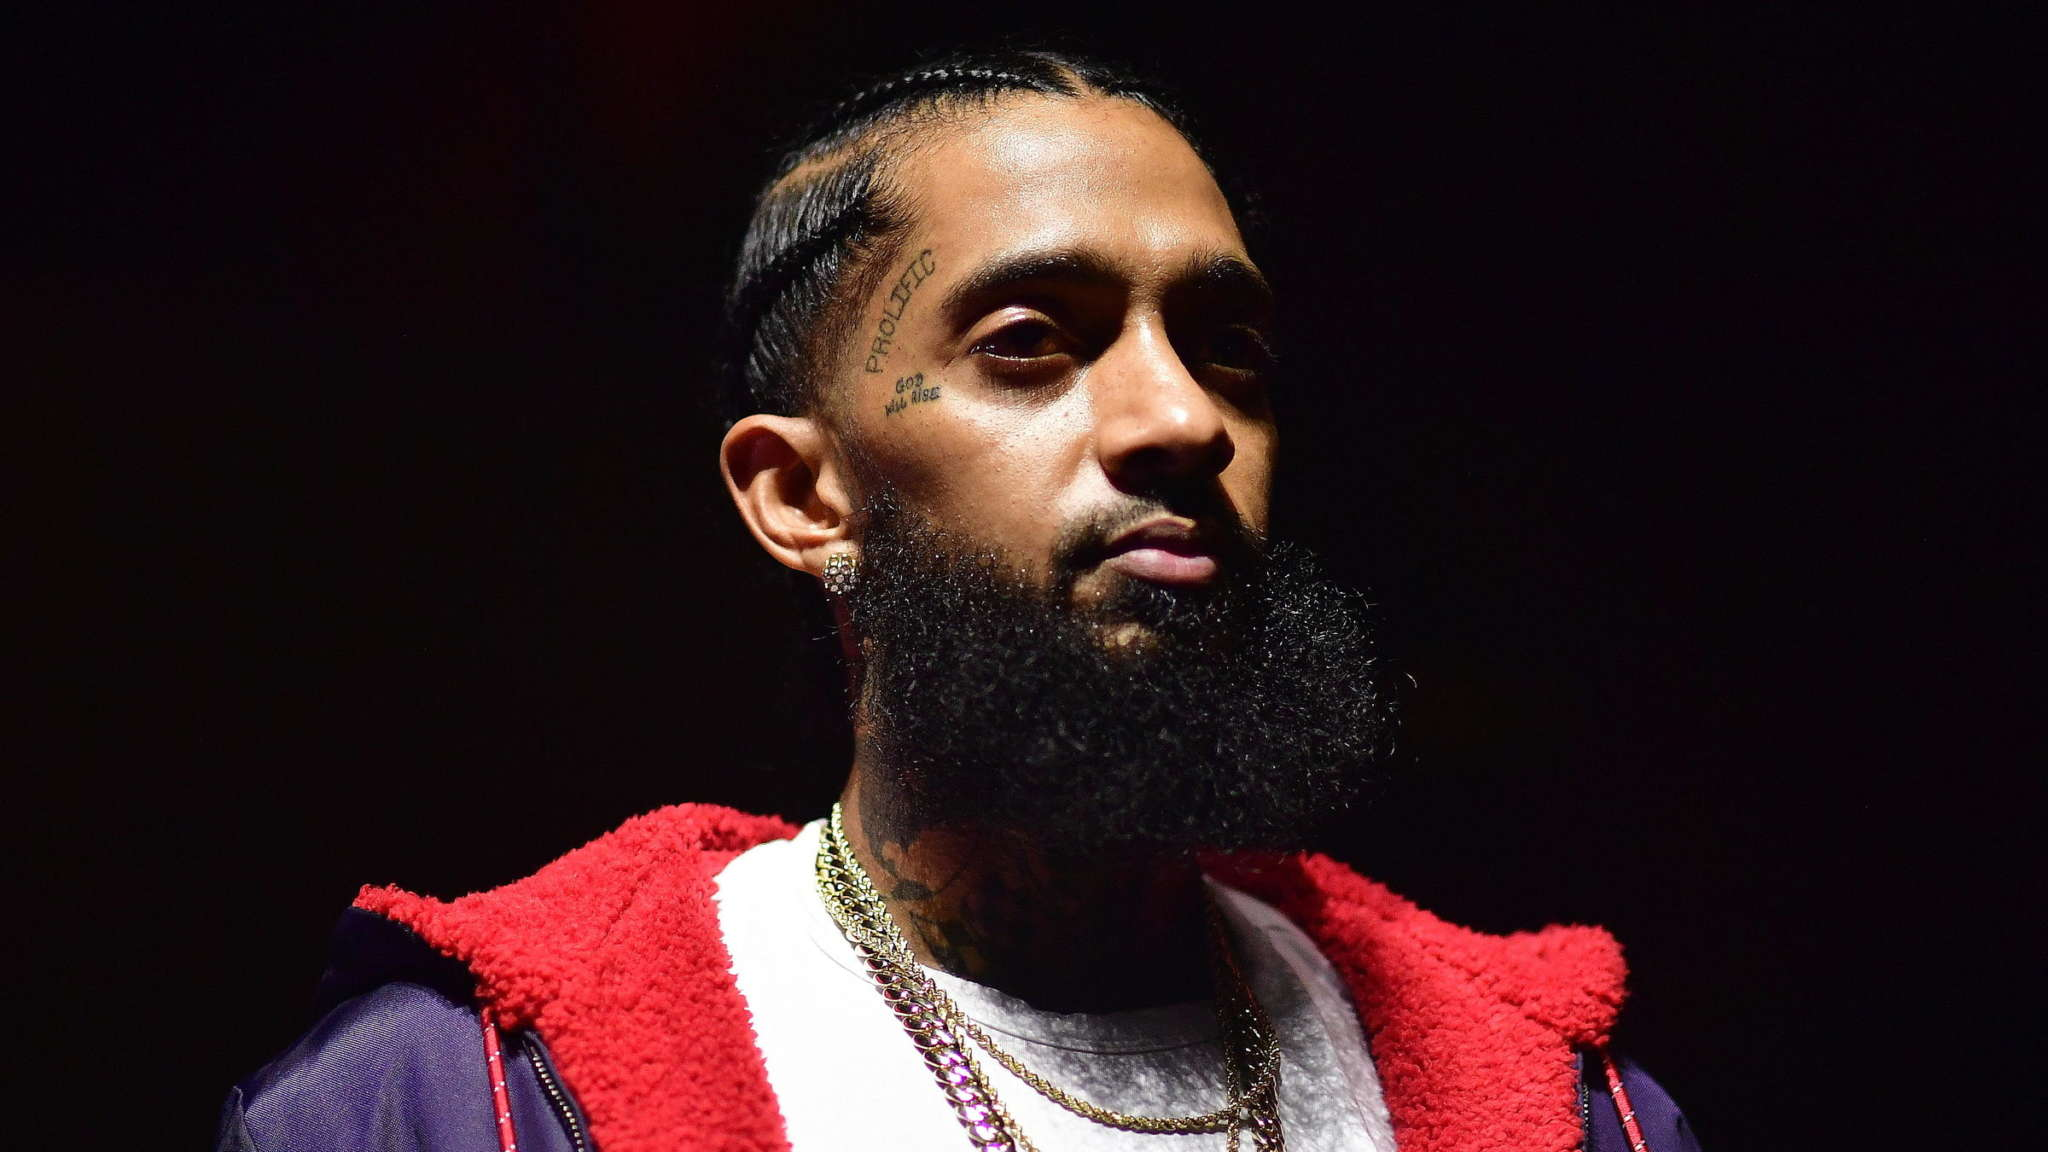 Nipsey Hussle's Marathon Clothing Store Was Vandalized - Fans Are Fuming! See The Video